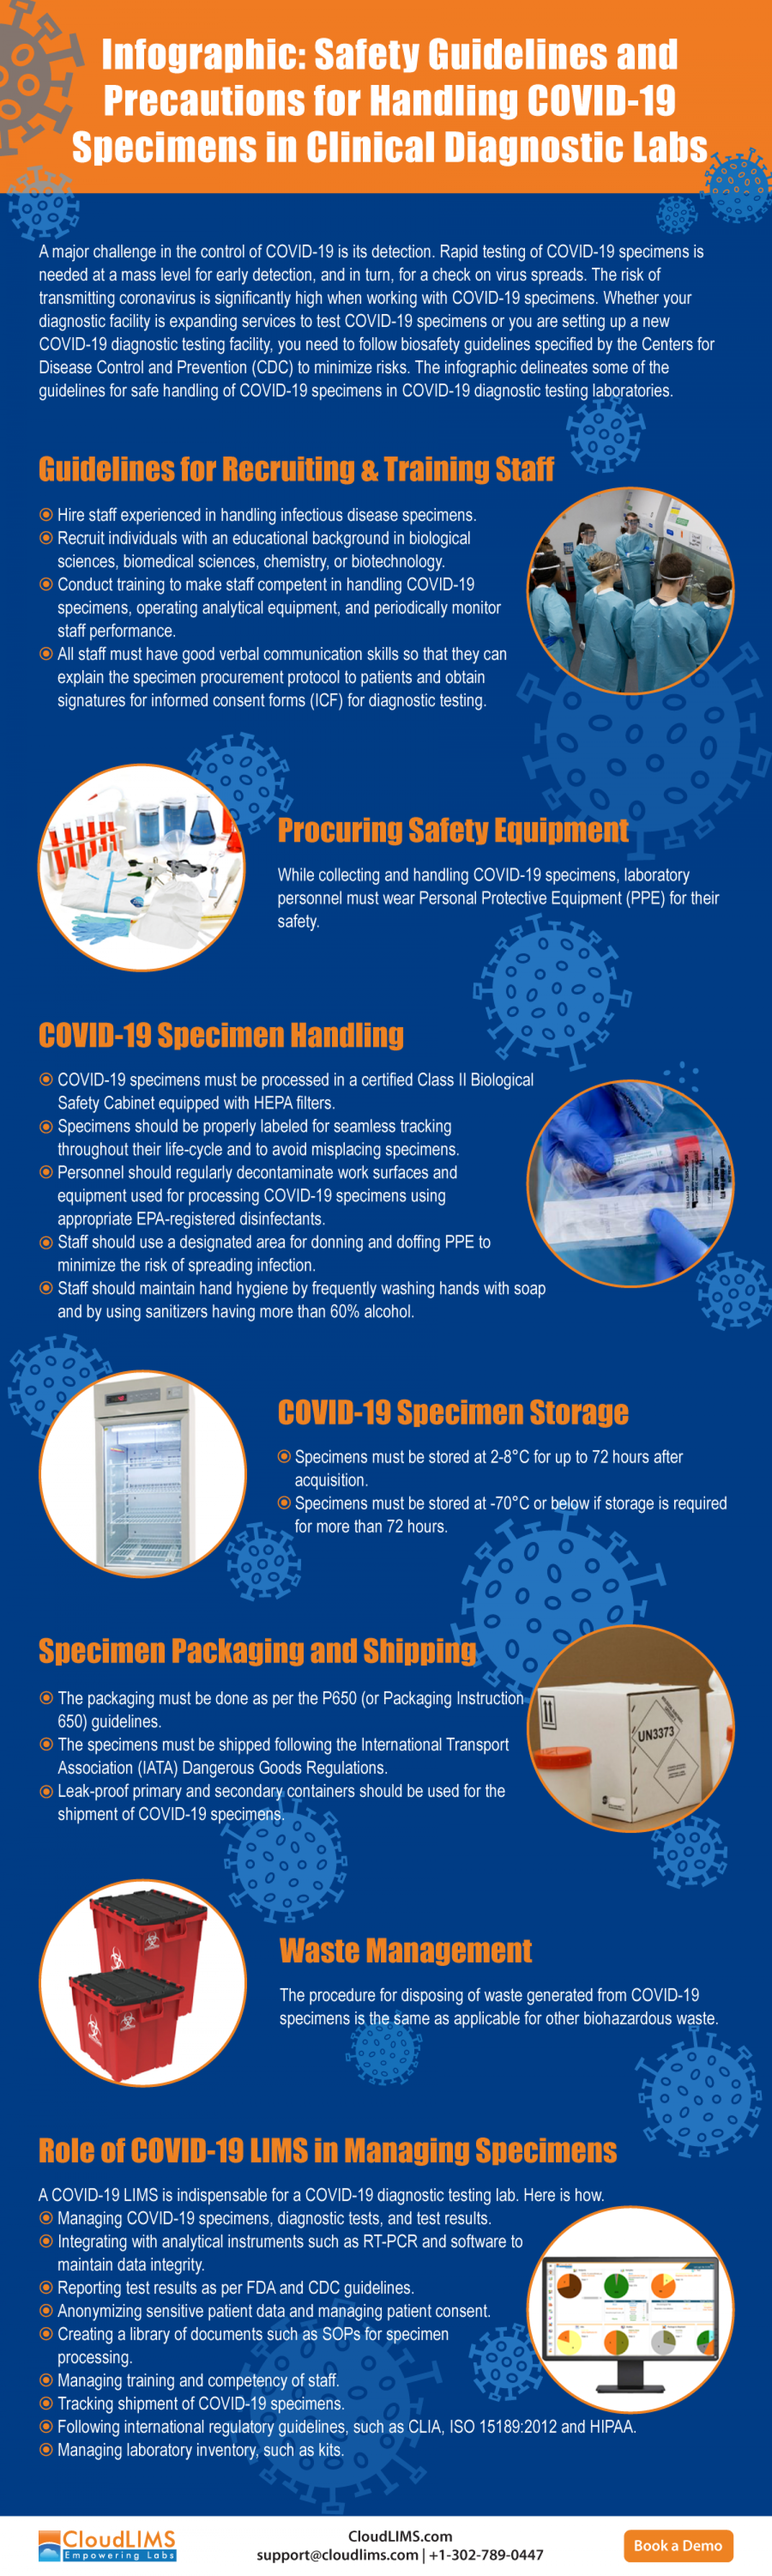 Infographic: Guidelines for COVID-19 Specimens Collection & Handling Infographic